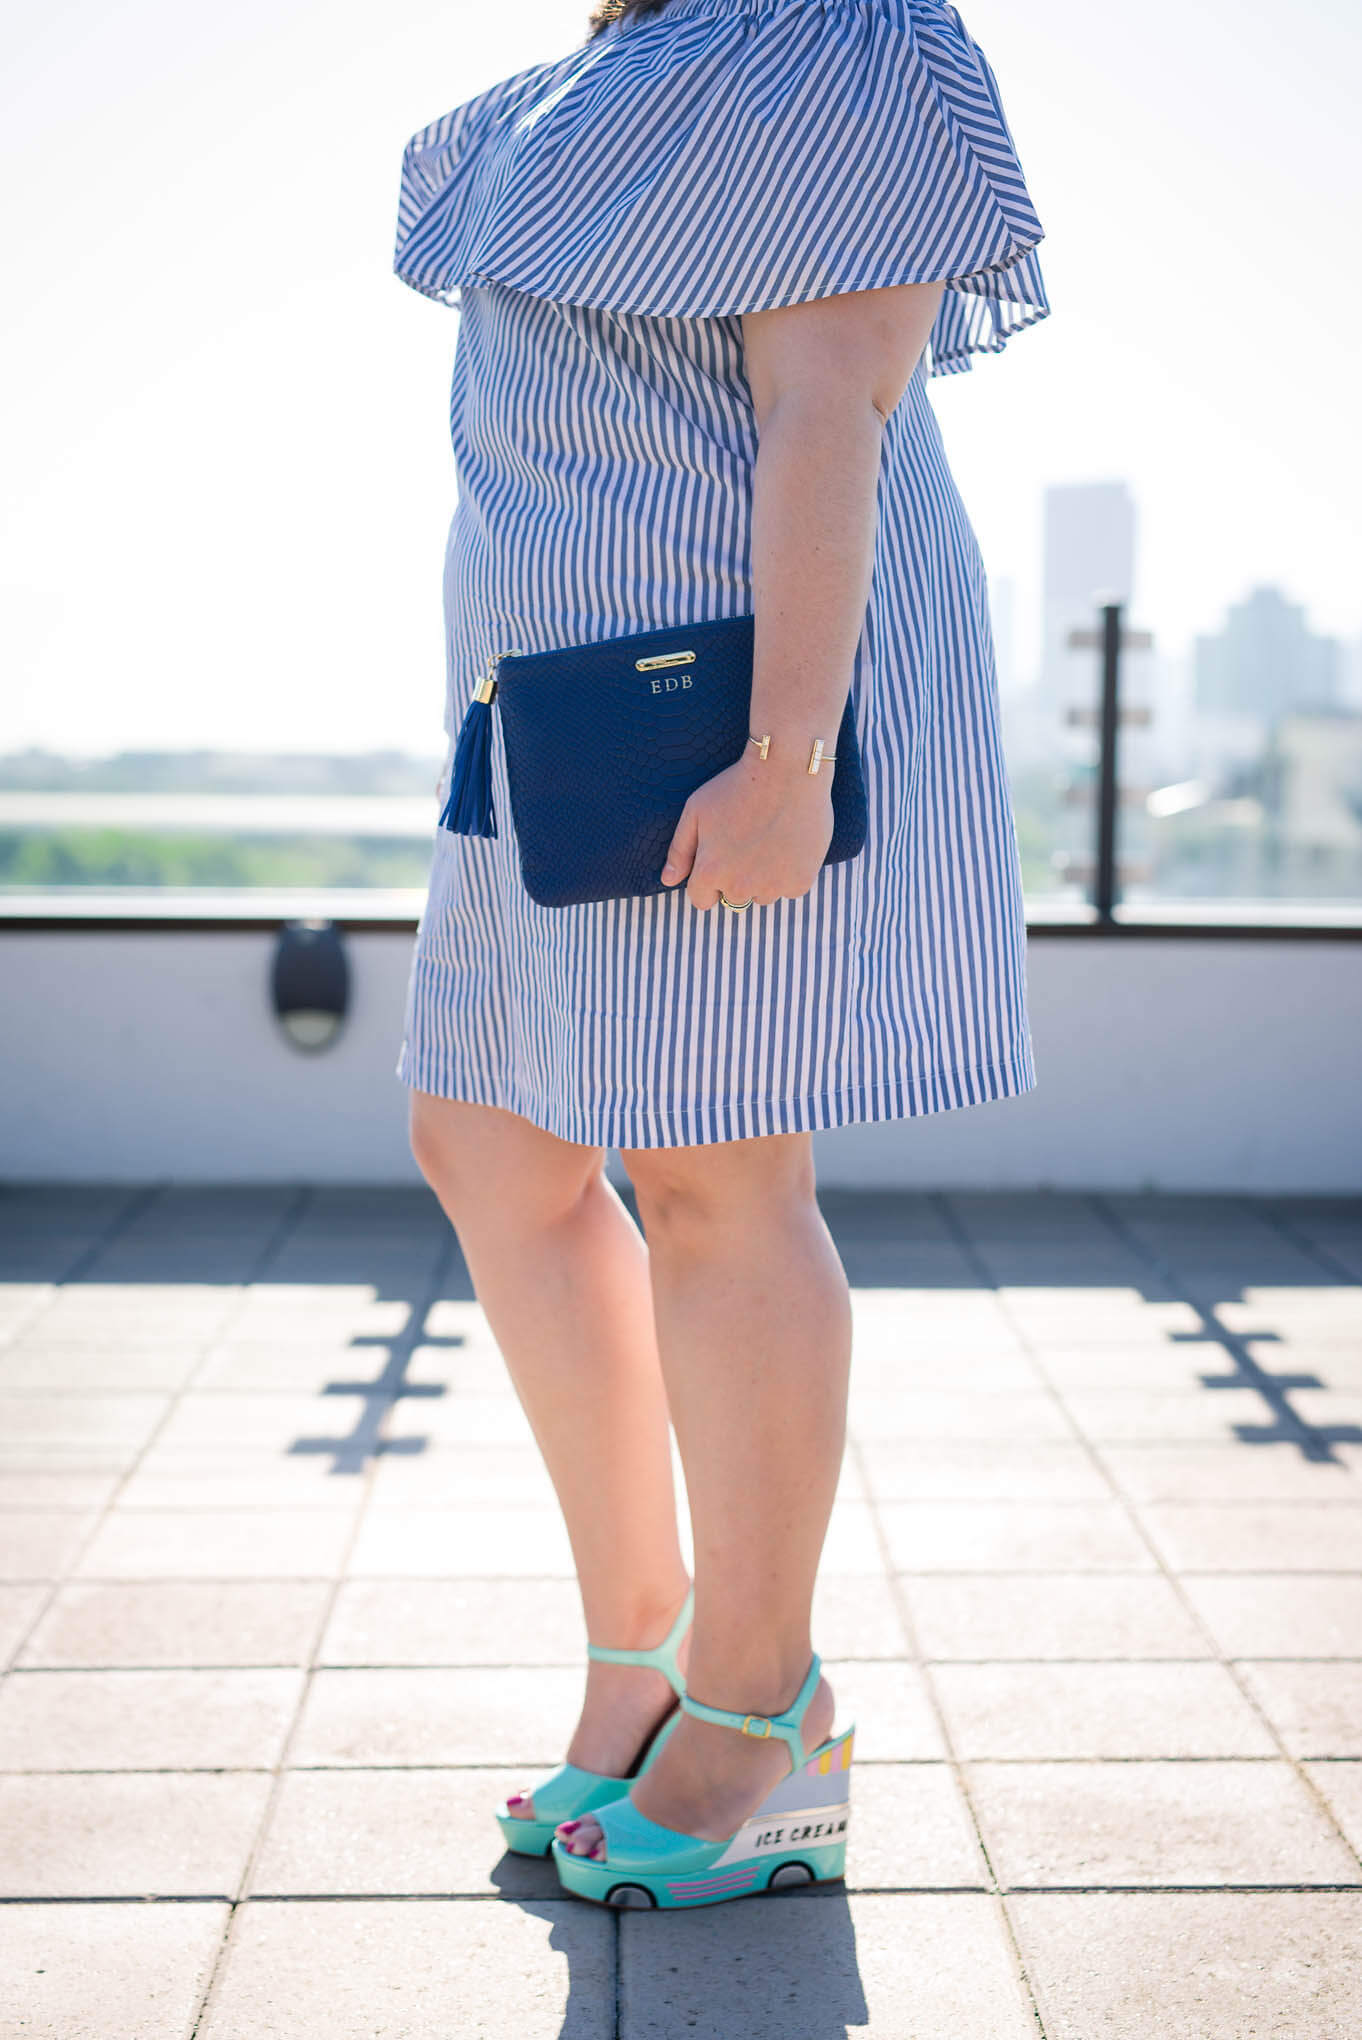 Kate Spade Ice Cream Wedges - Something Gold, Something Blue fashion blog - What to wear to a spring brunch, off the shoulder dress, spring dresses, @Eloquii off the shoulder dress, @katespade ice cream truck wedges, @giginewyork uber clutch, @rocksbox bangle